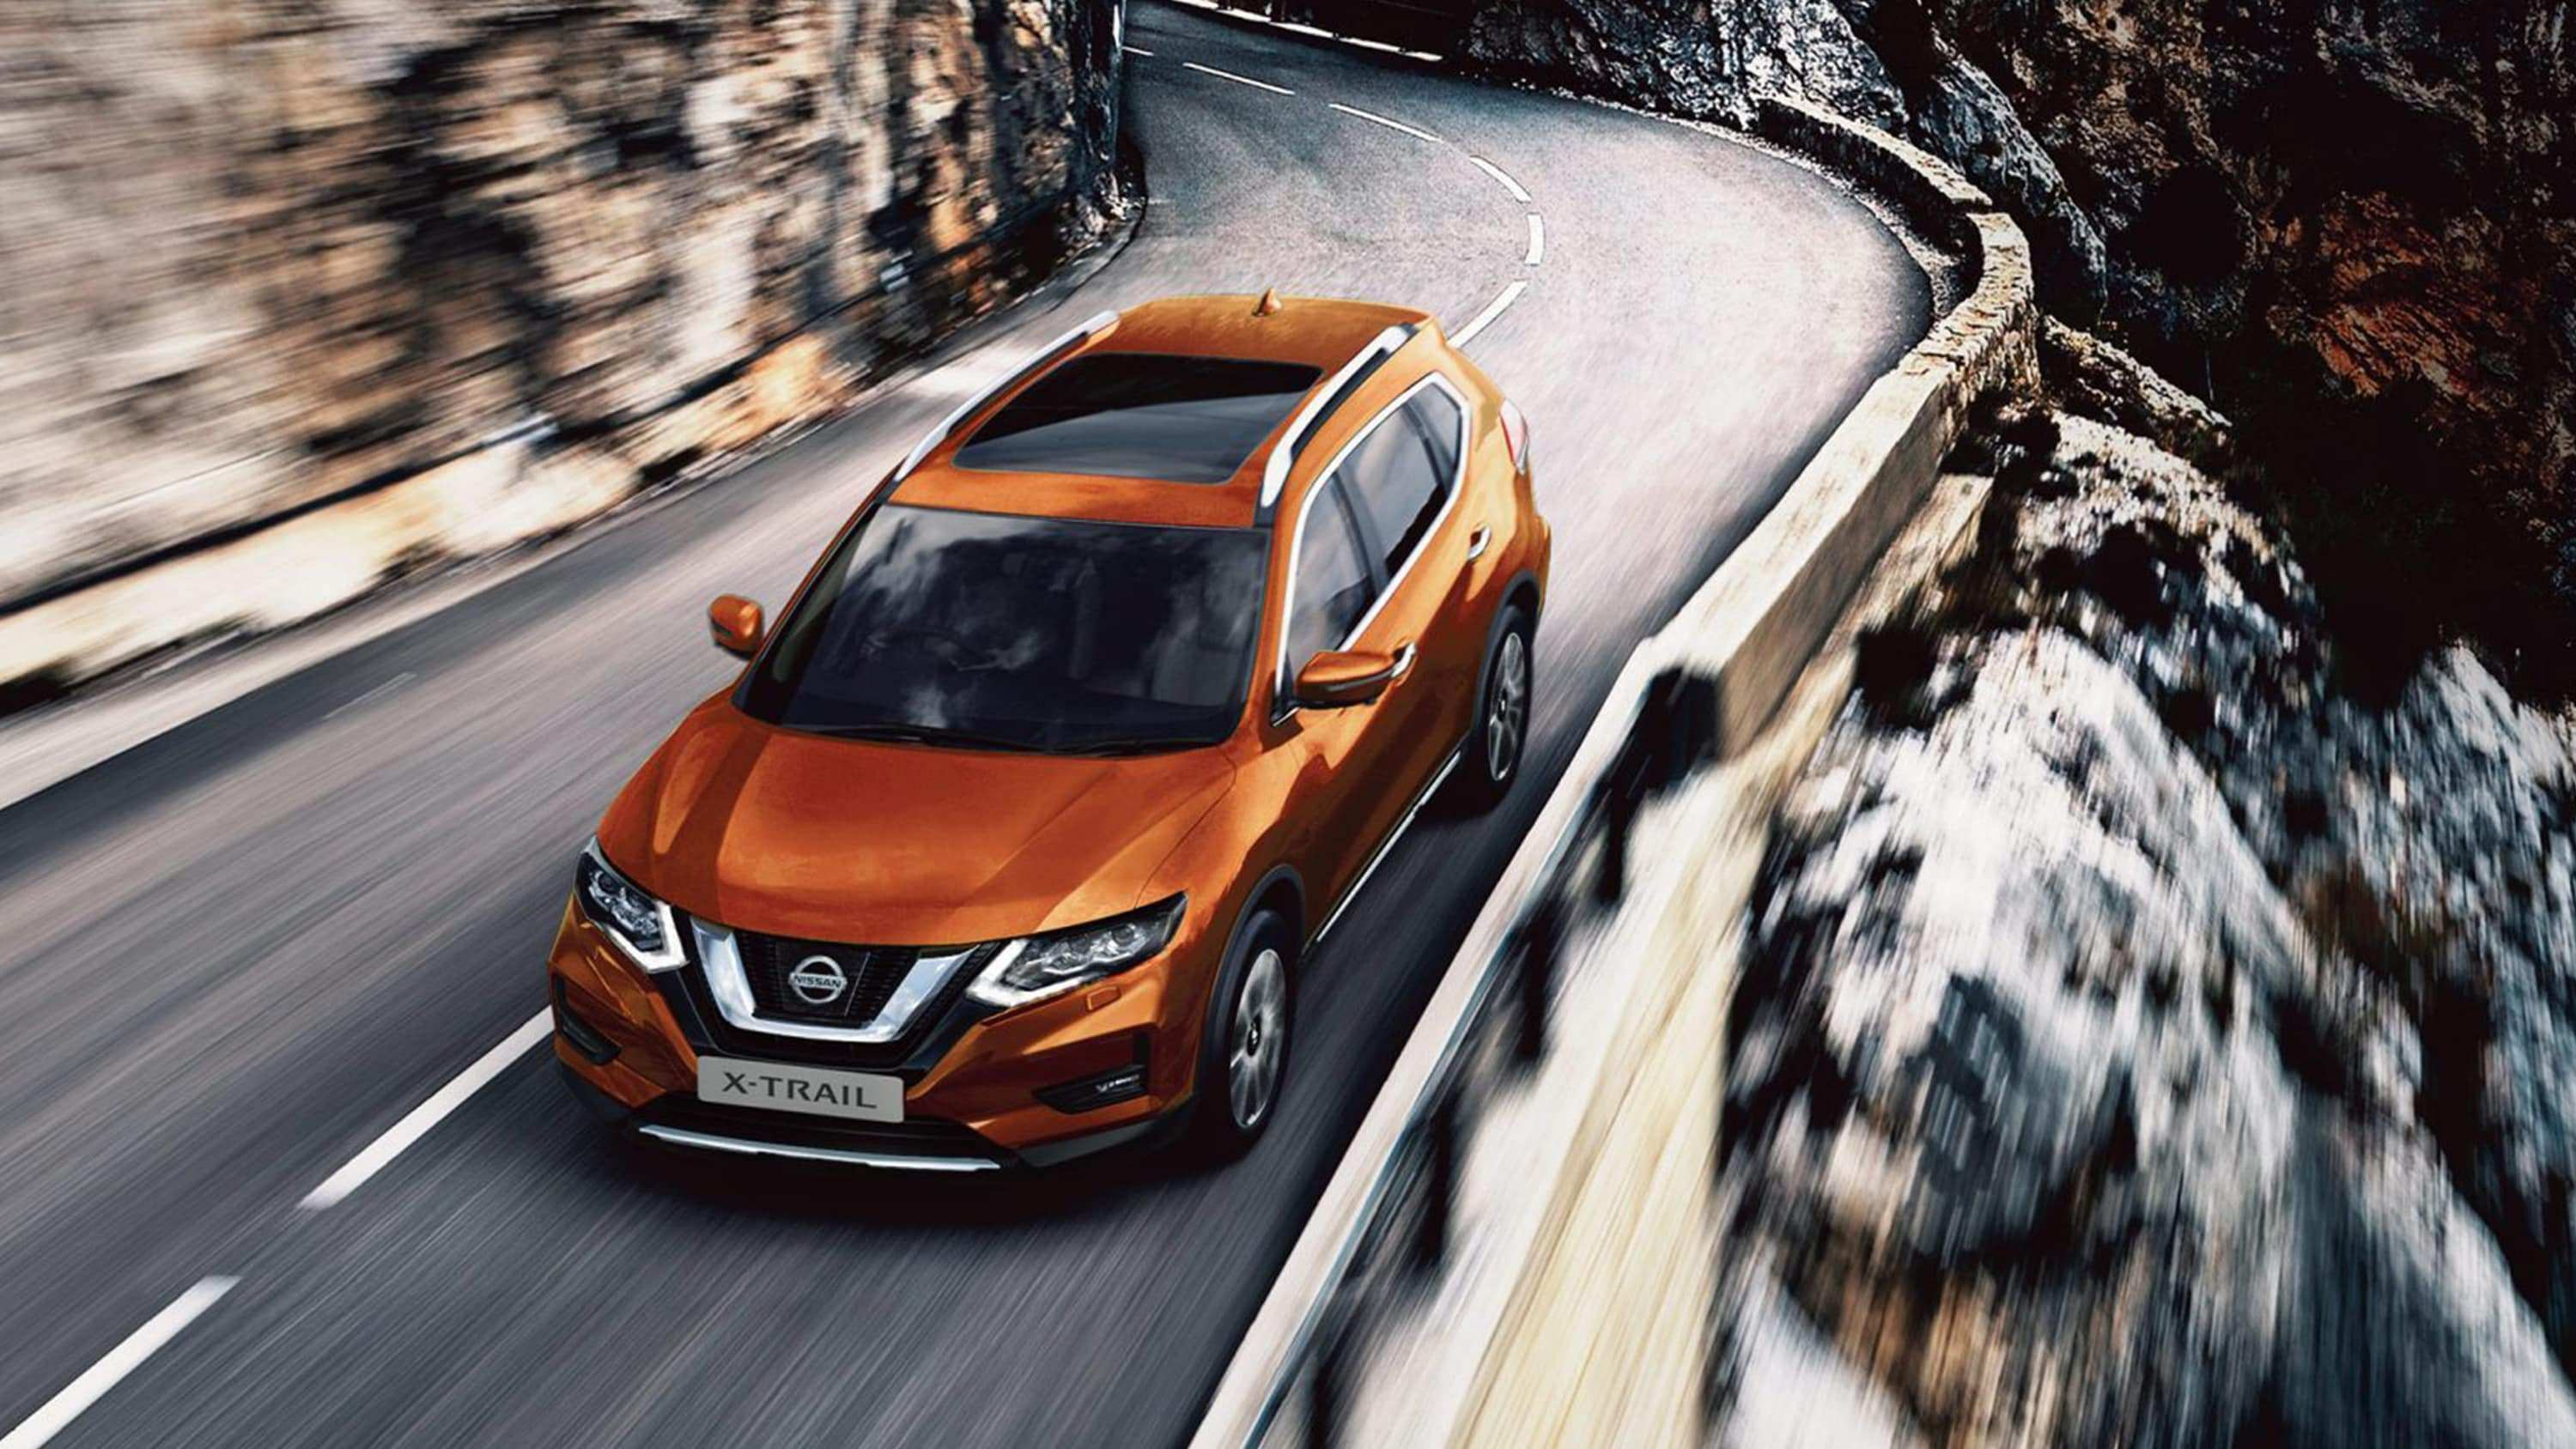 96 The Best Nissan X Trail 2020 Mexico Specs And Review